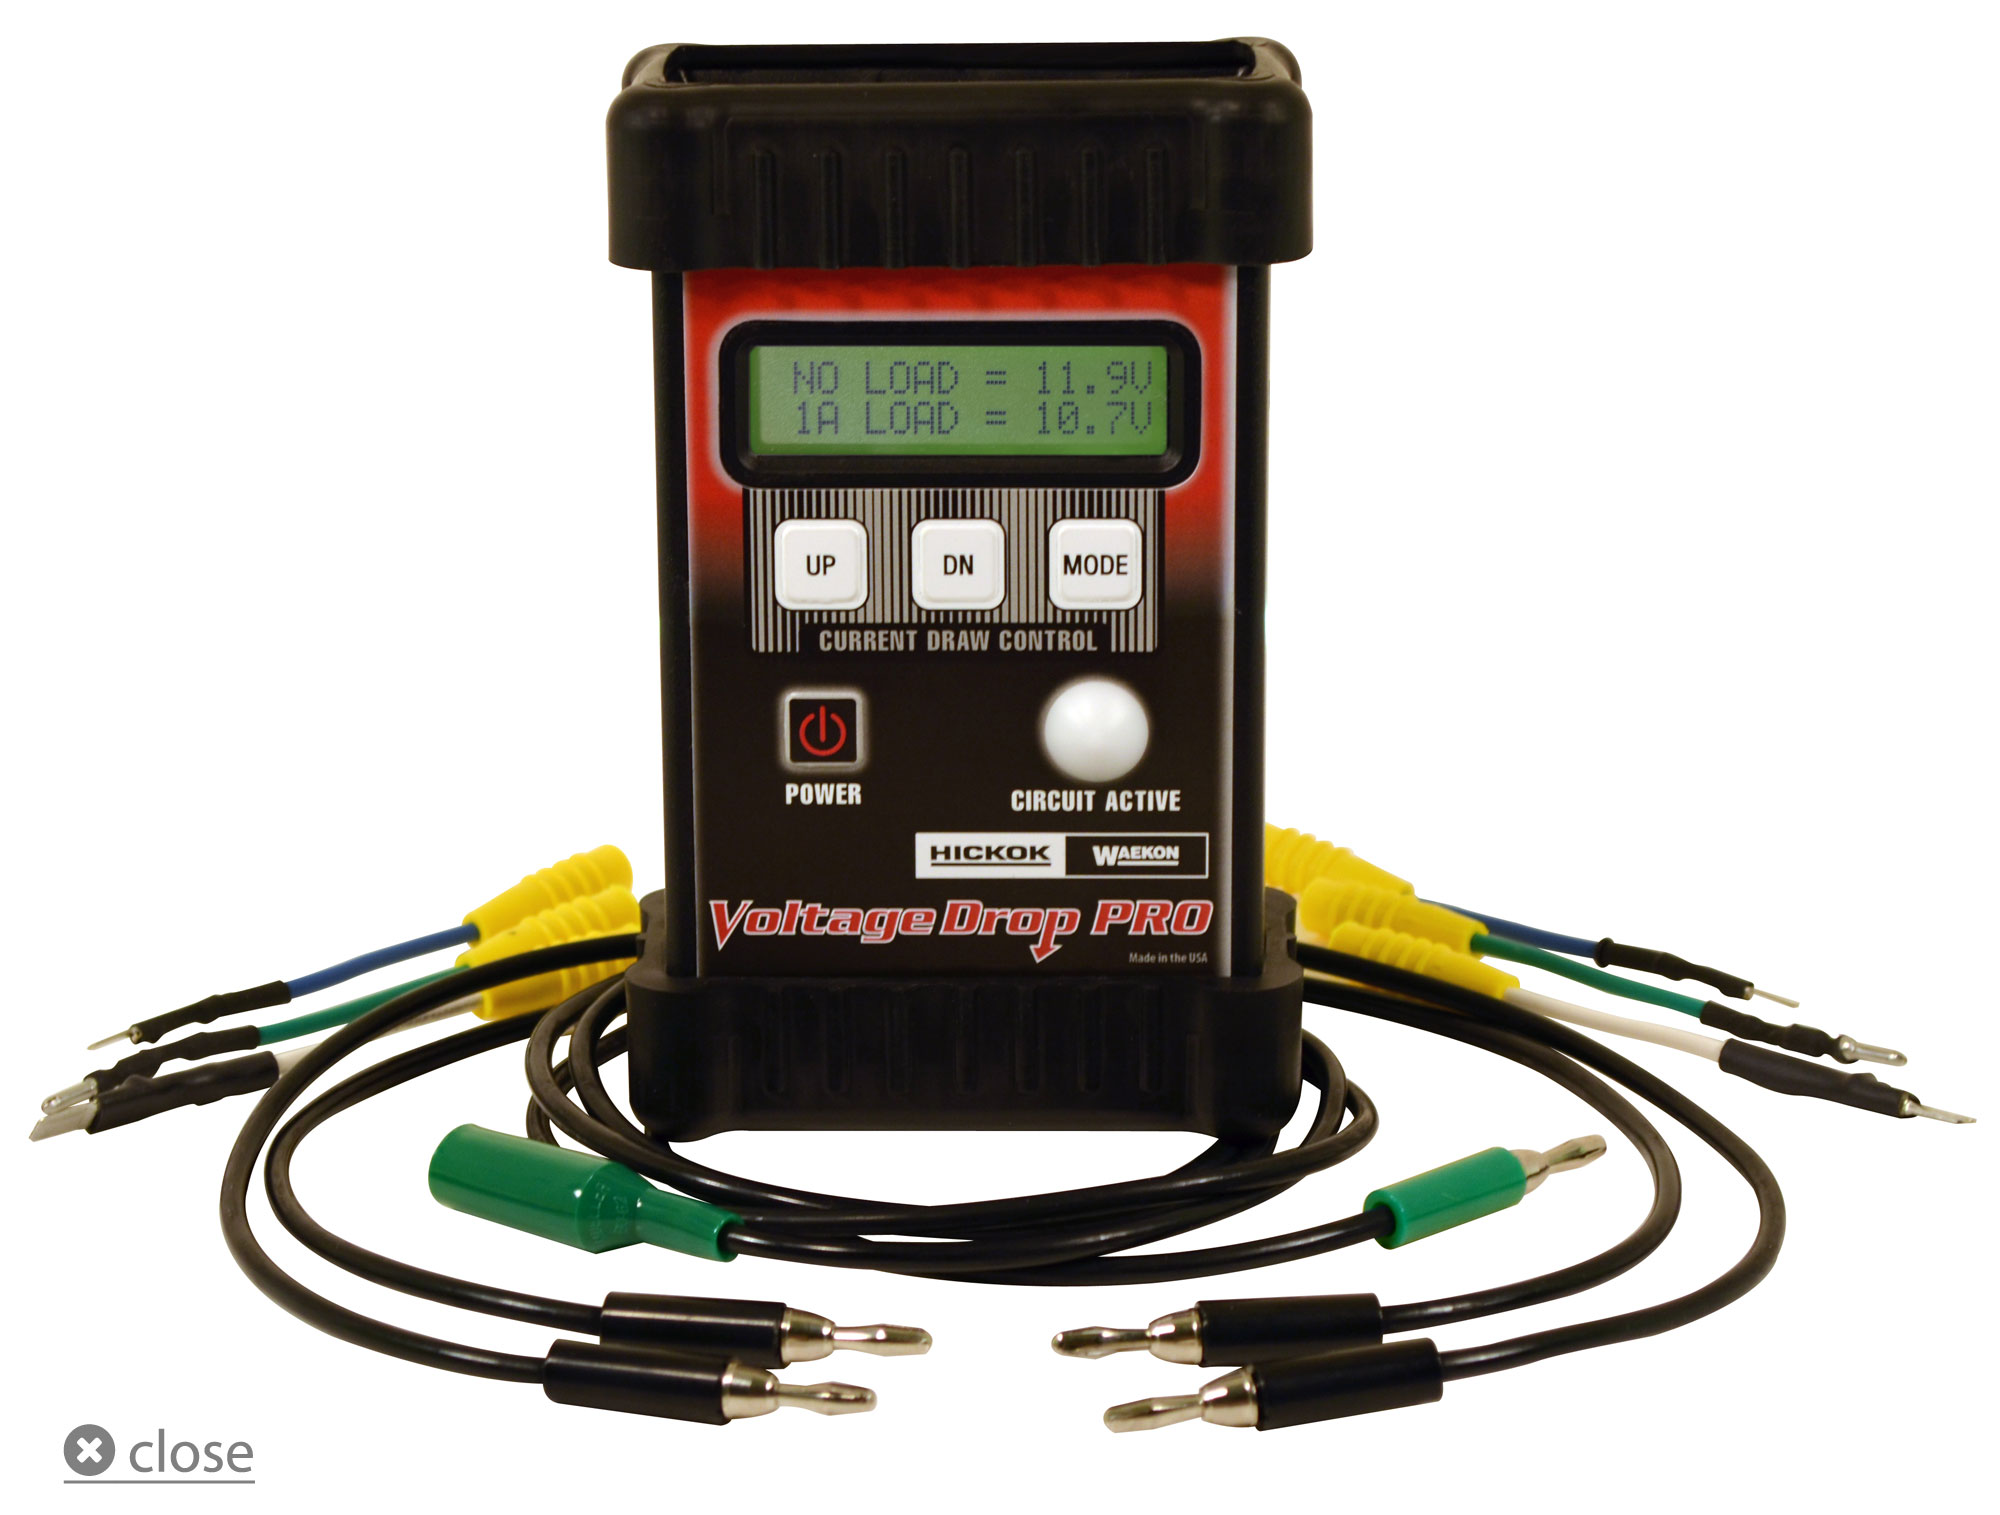 Kd Tools Circuit Testers : Voltage drop pro automotive circuit tester from